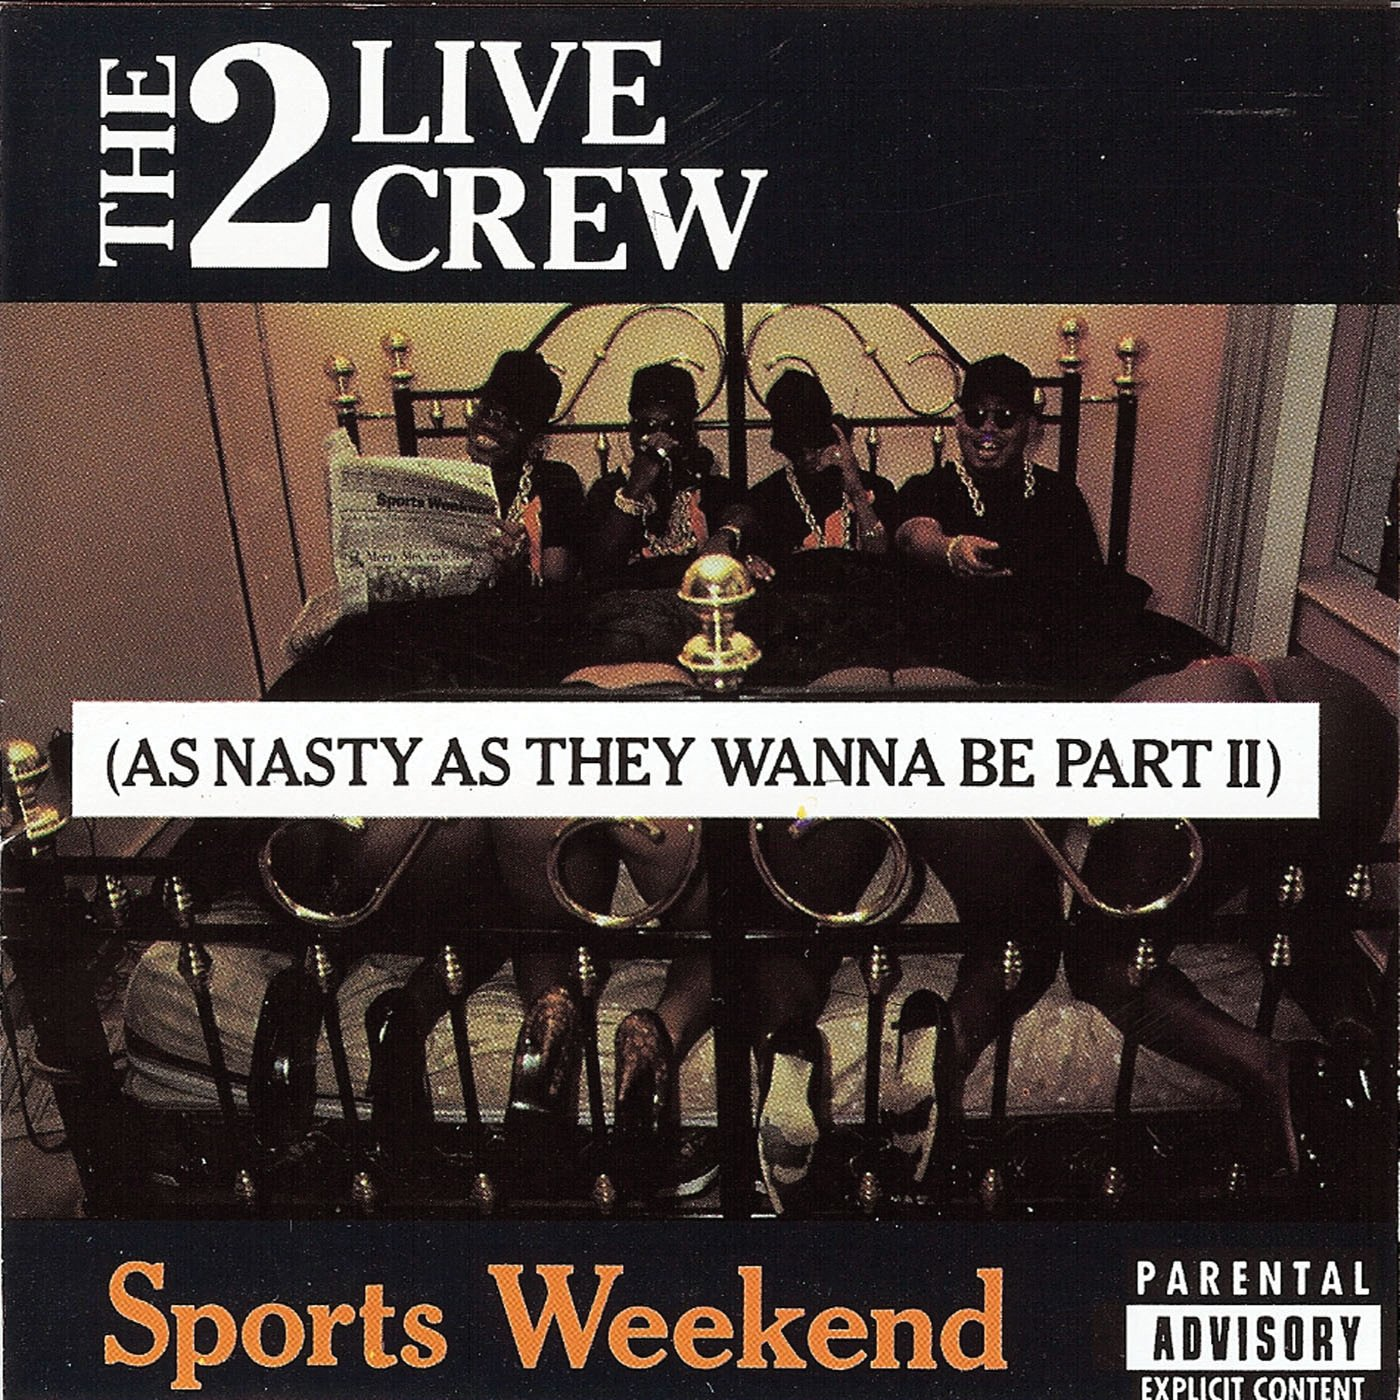 Sports Weekend: As Nasty As They Wanna Be, Part II by Luke